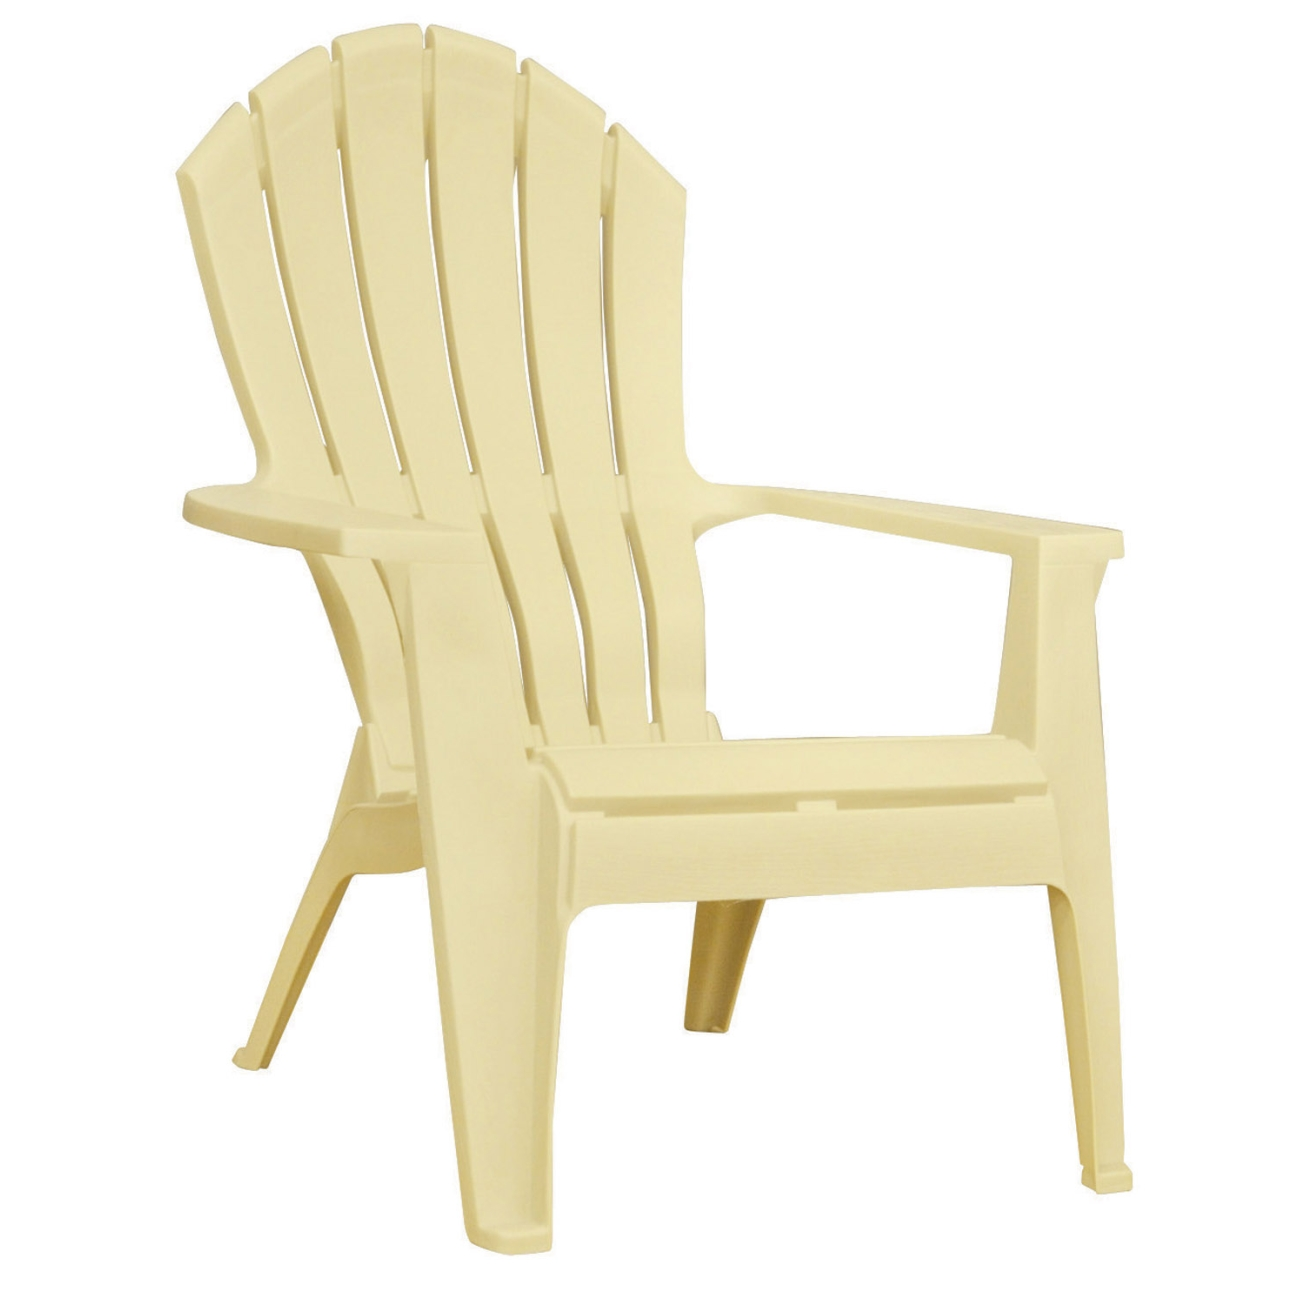 plastic adirondack chairs adams realcomfort adirondack chair 1 pc. yellow (8371-10-3700) - OUJKLTZ